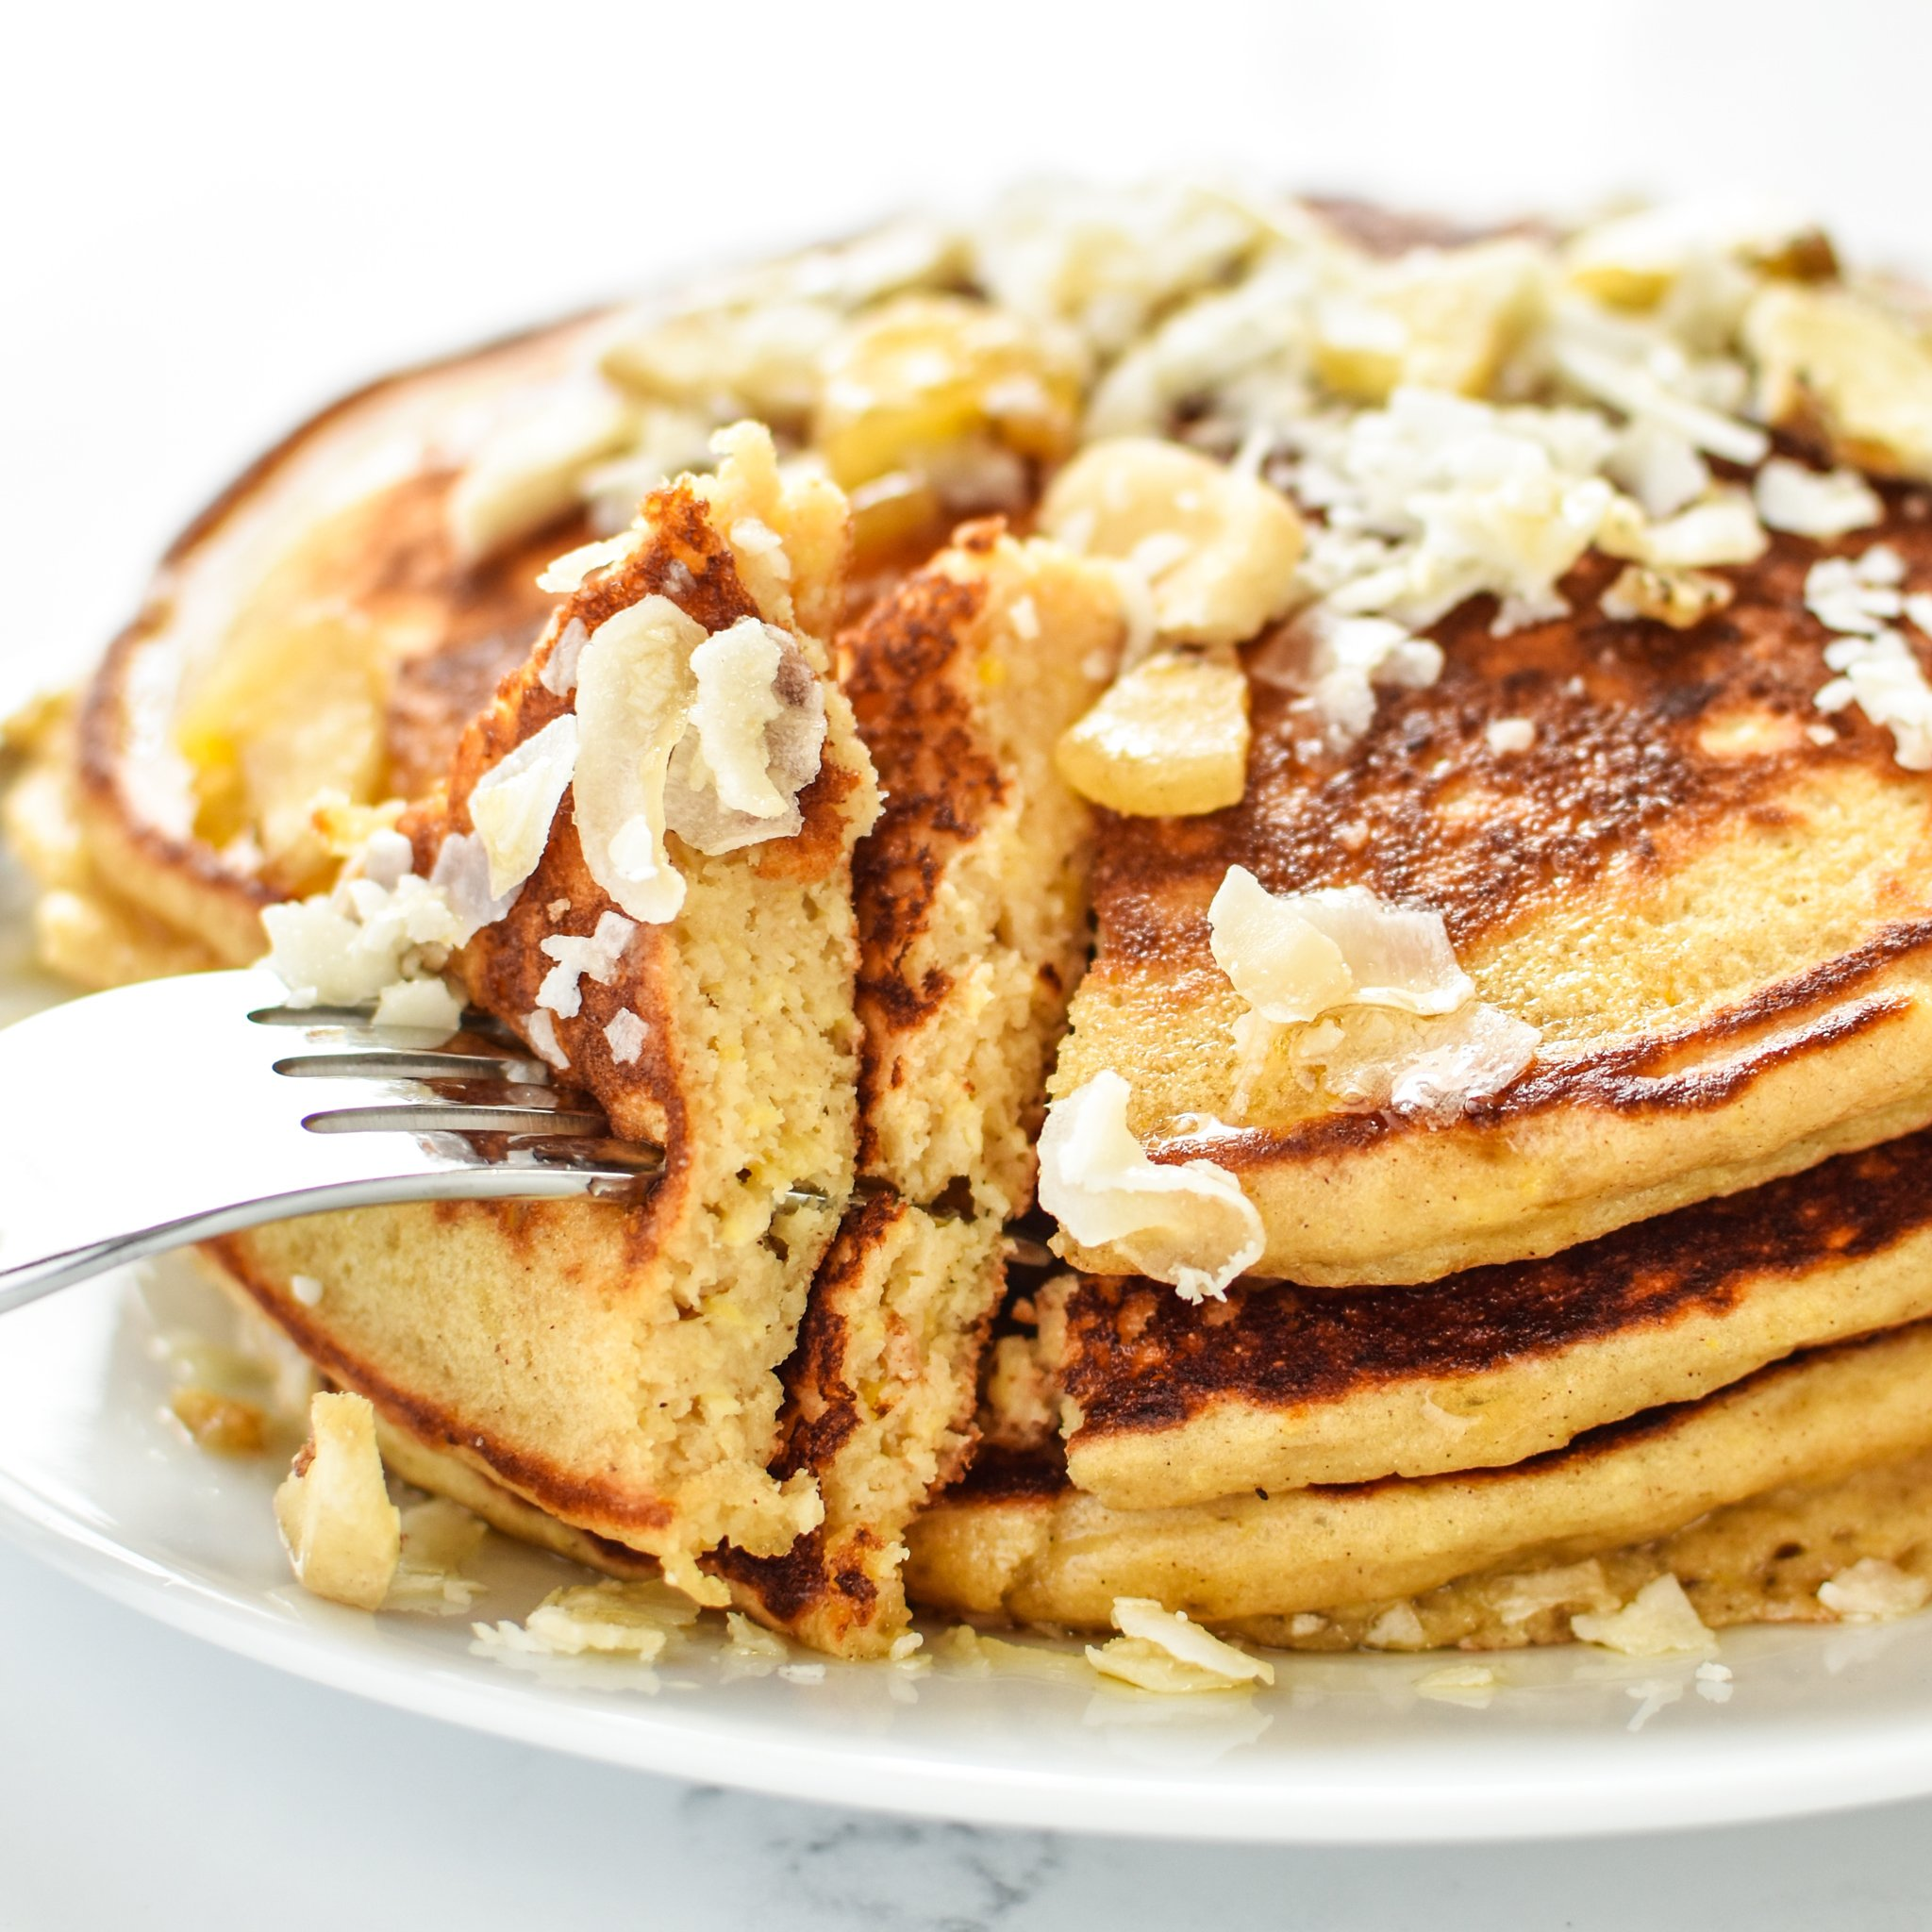 Tropical Pineapple Protein Pancakes Recipe - A perfect blend of pineapple helps keep these delicious protein pancakes moist and perfect for on-the-go! - ProjectMealPlan.com